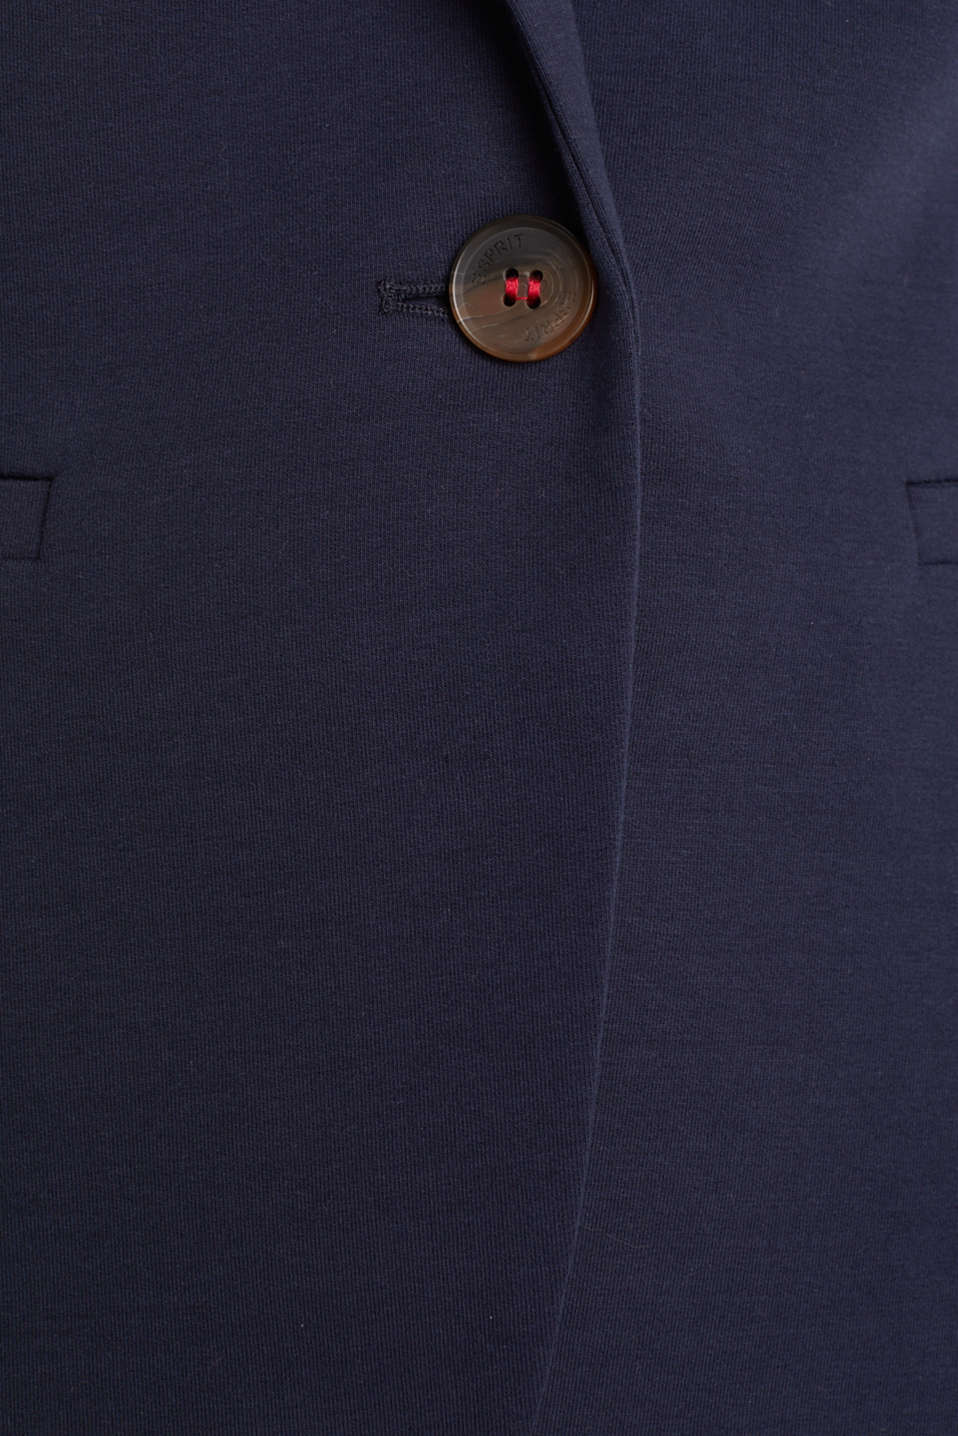 Stretch jersey blazer with decorative stitching, NAVY, detail image number 4